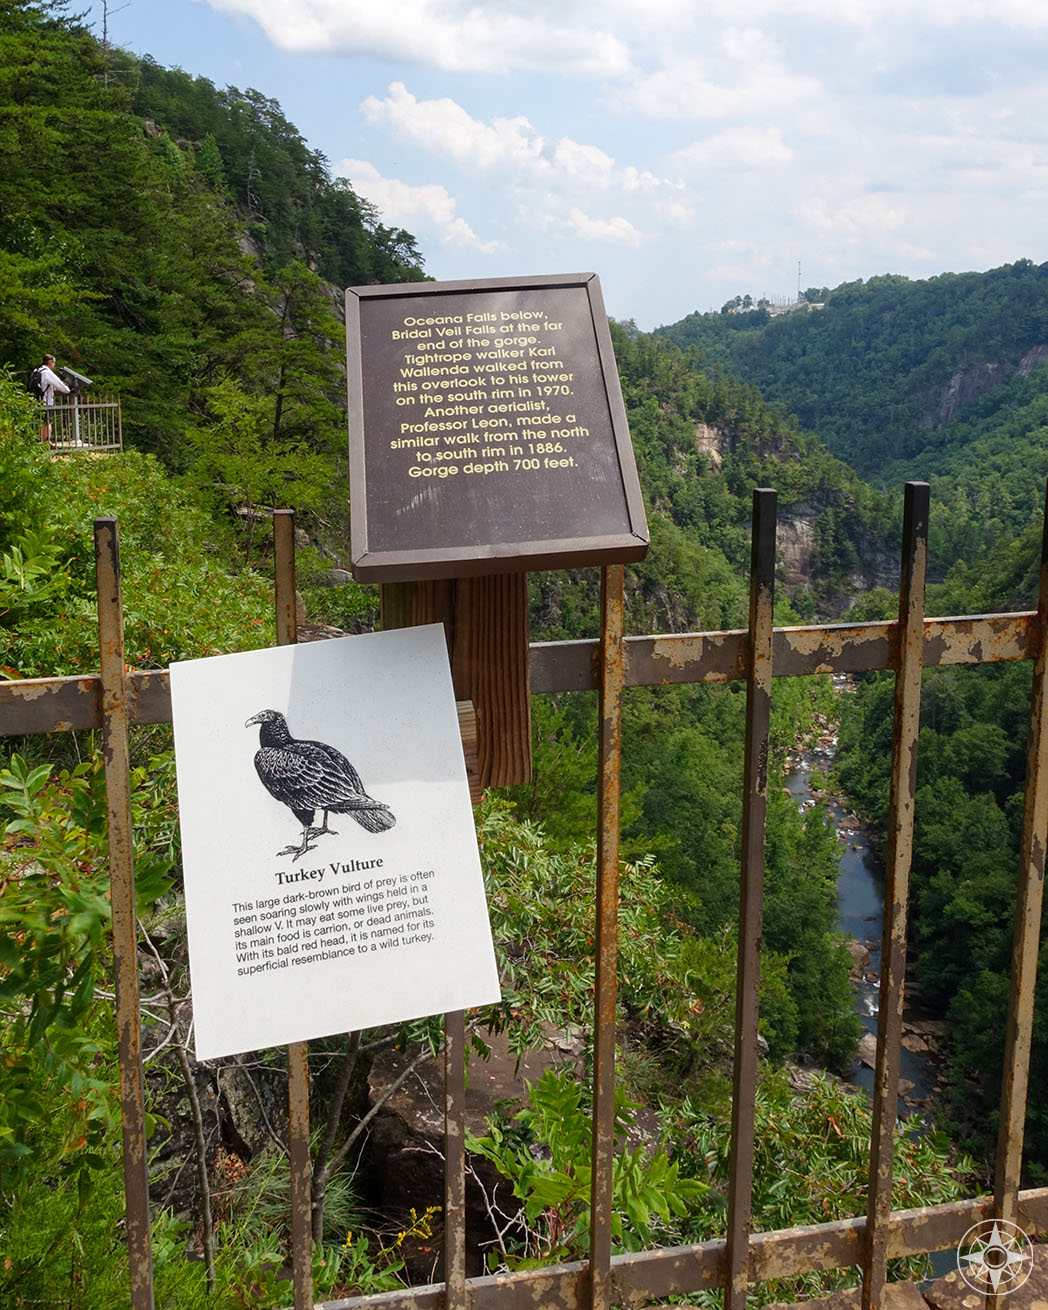 Informational signs can be found along the overlooks of the North Rim Trail, vulture, tightrope walker, waterfalls, Oceana Falls, Bridal Falls, Tallulah Falls